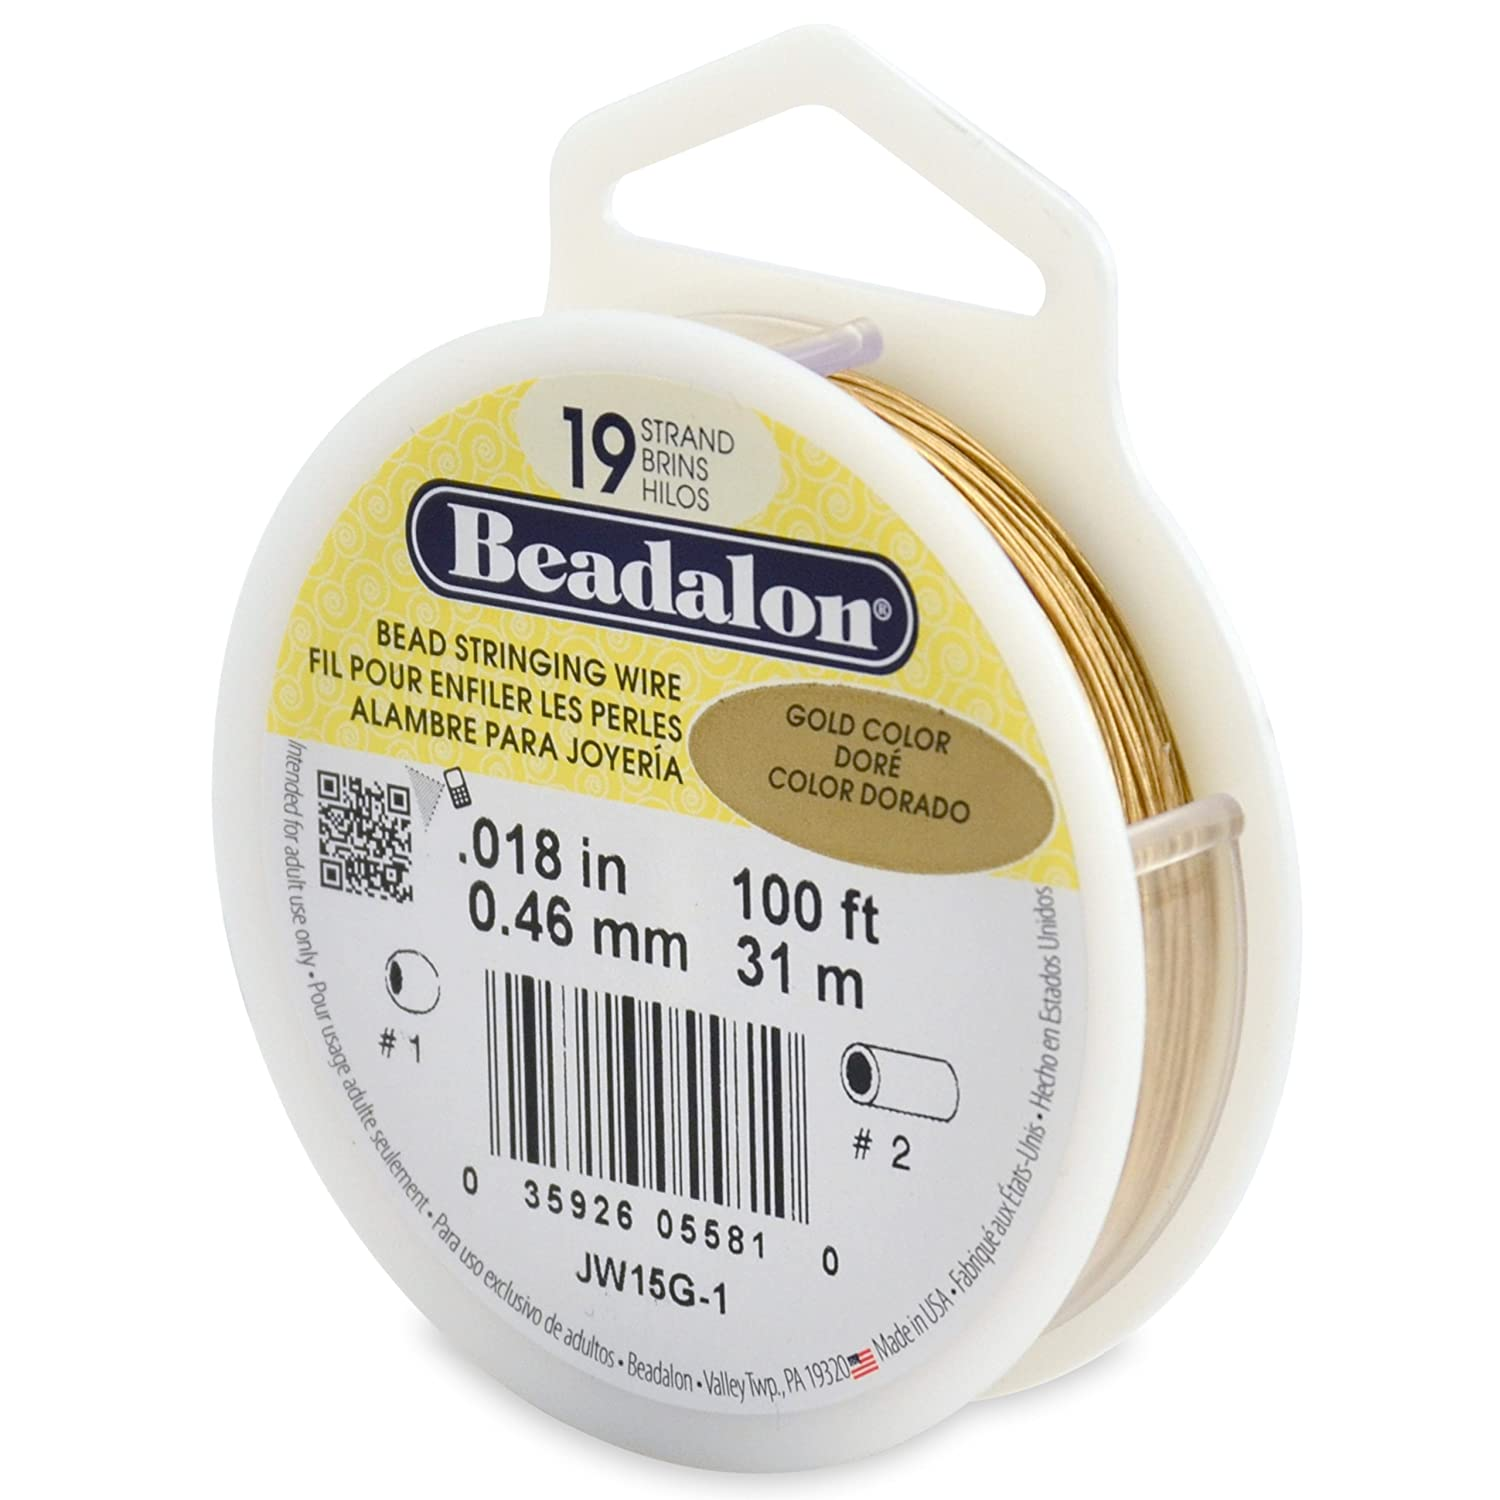 Beadalon 19-Strand Bead Stringing Wire, 0.018-Inch, Gold Color, 100-Feet JW15G-1